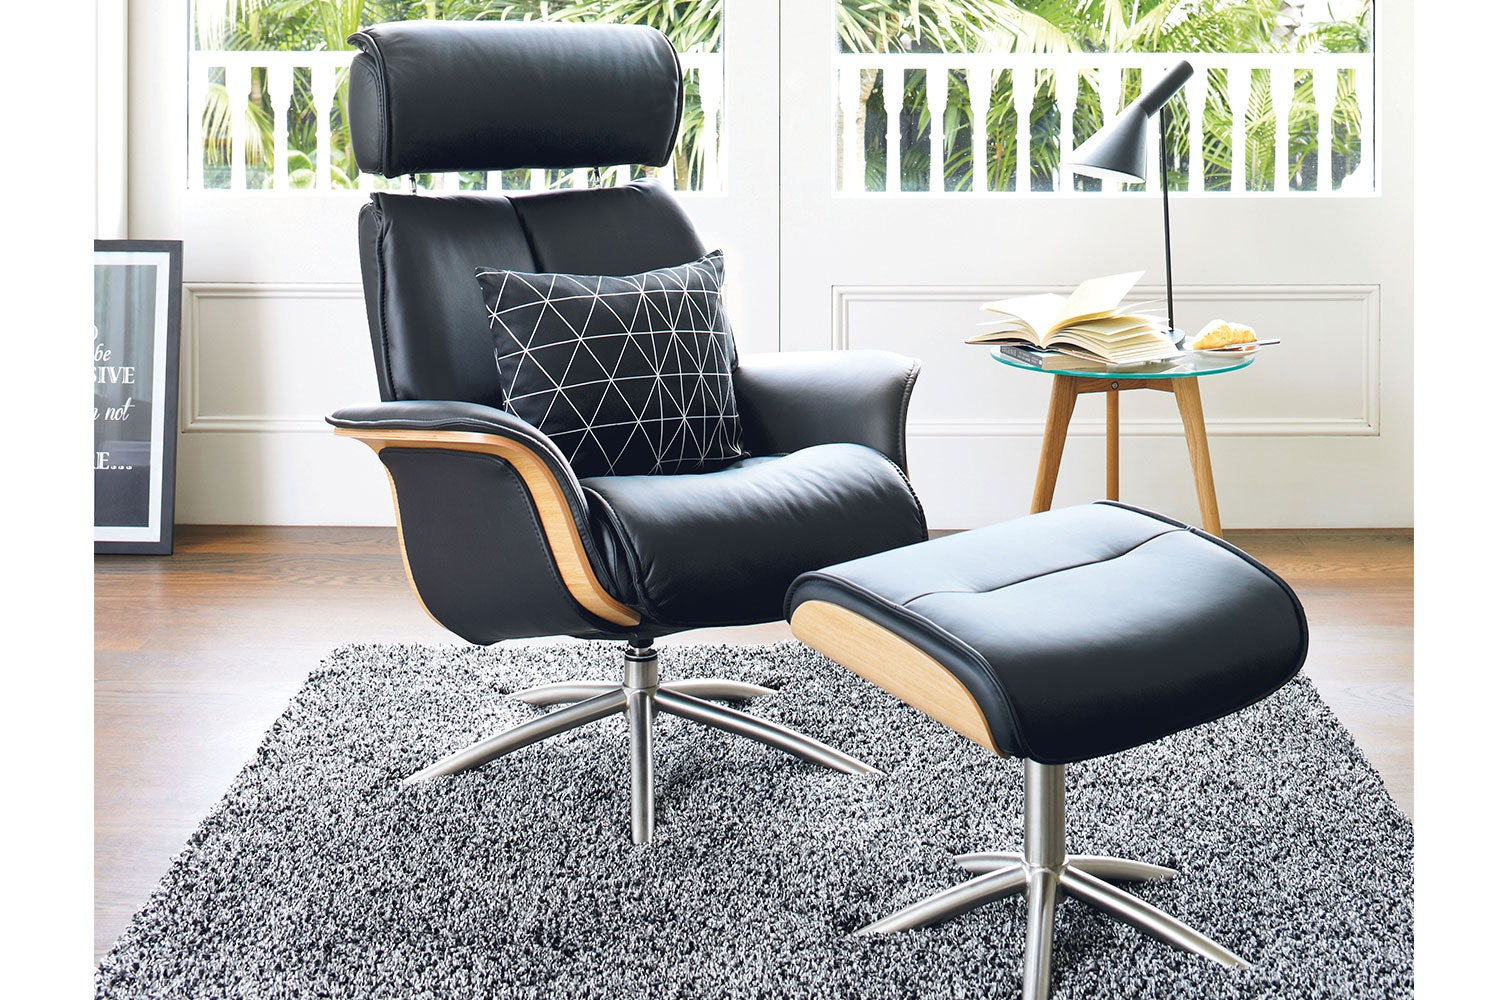 Space Leather Recliner Chair and Footstool - Trend- IMG